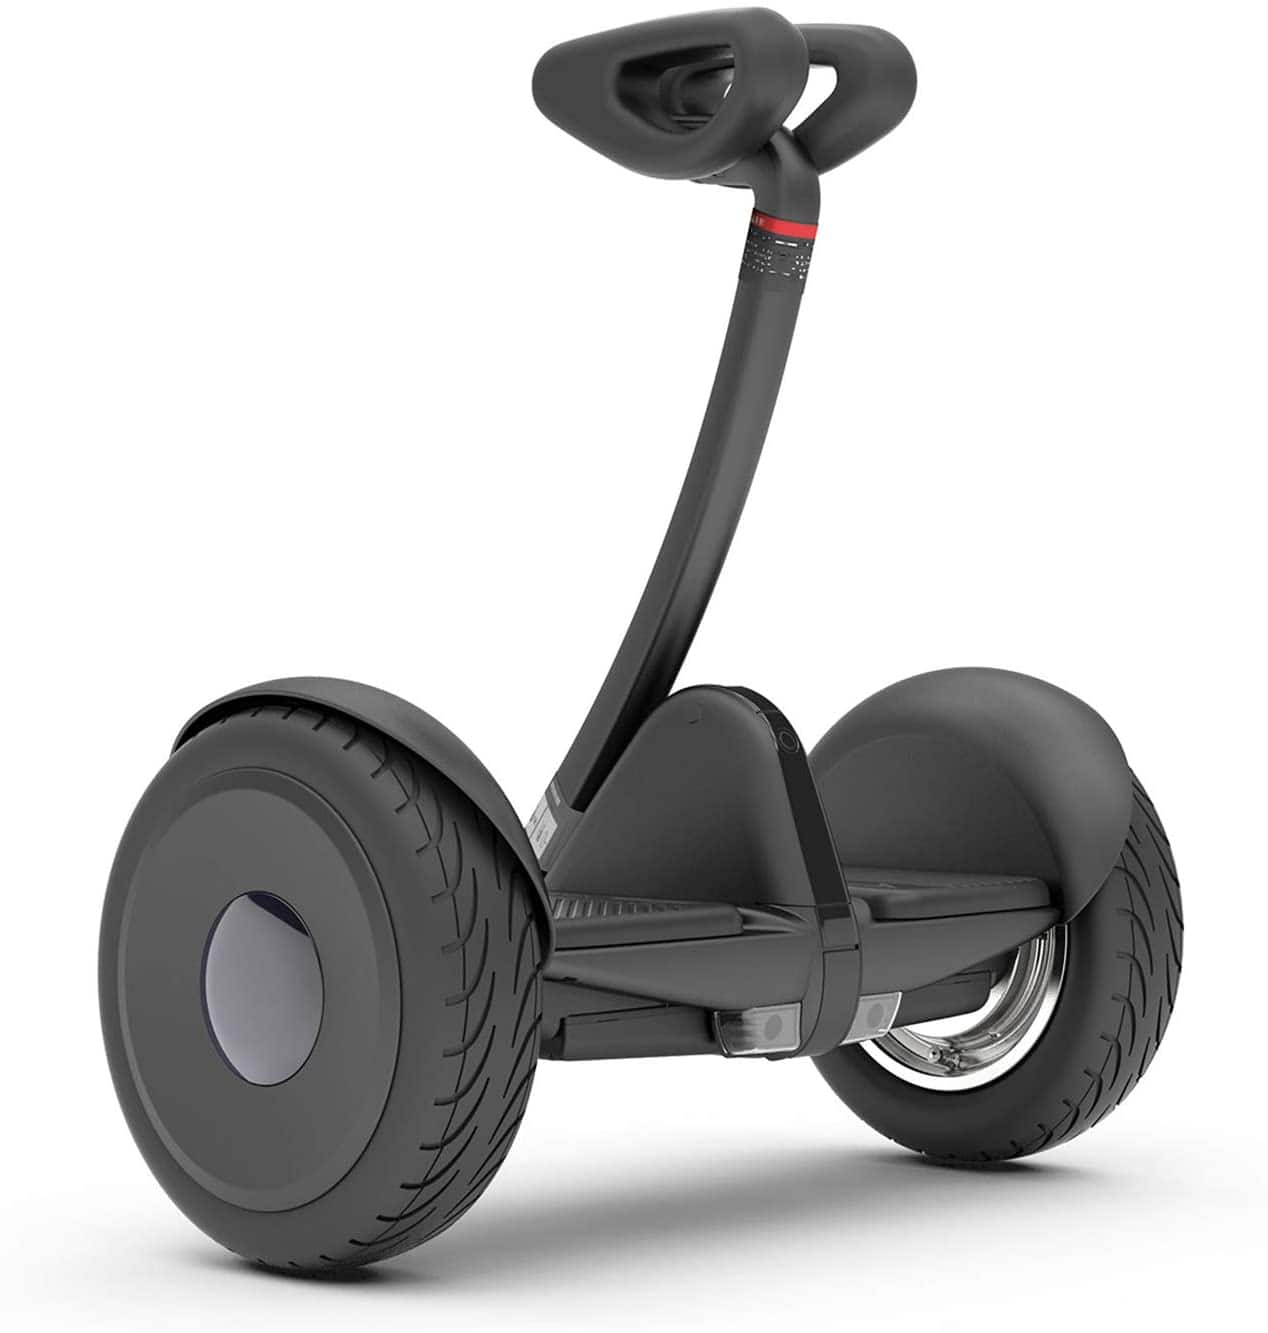 Segway Ninebot S Smart Self-Balancing Electric Scooter with LED light, Portable and Powerful, Black $458.34